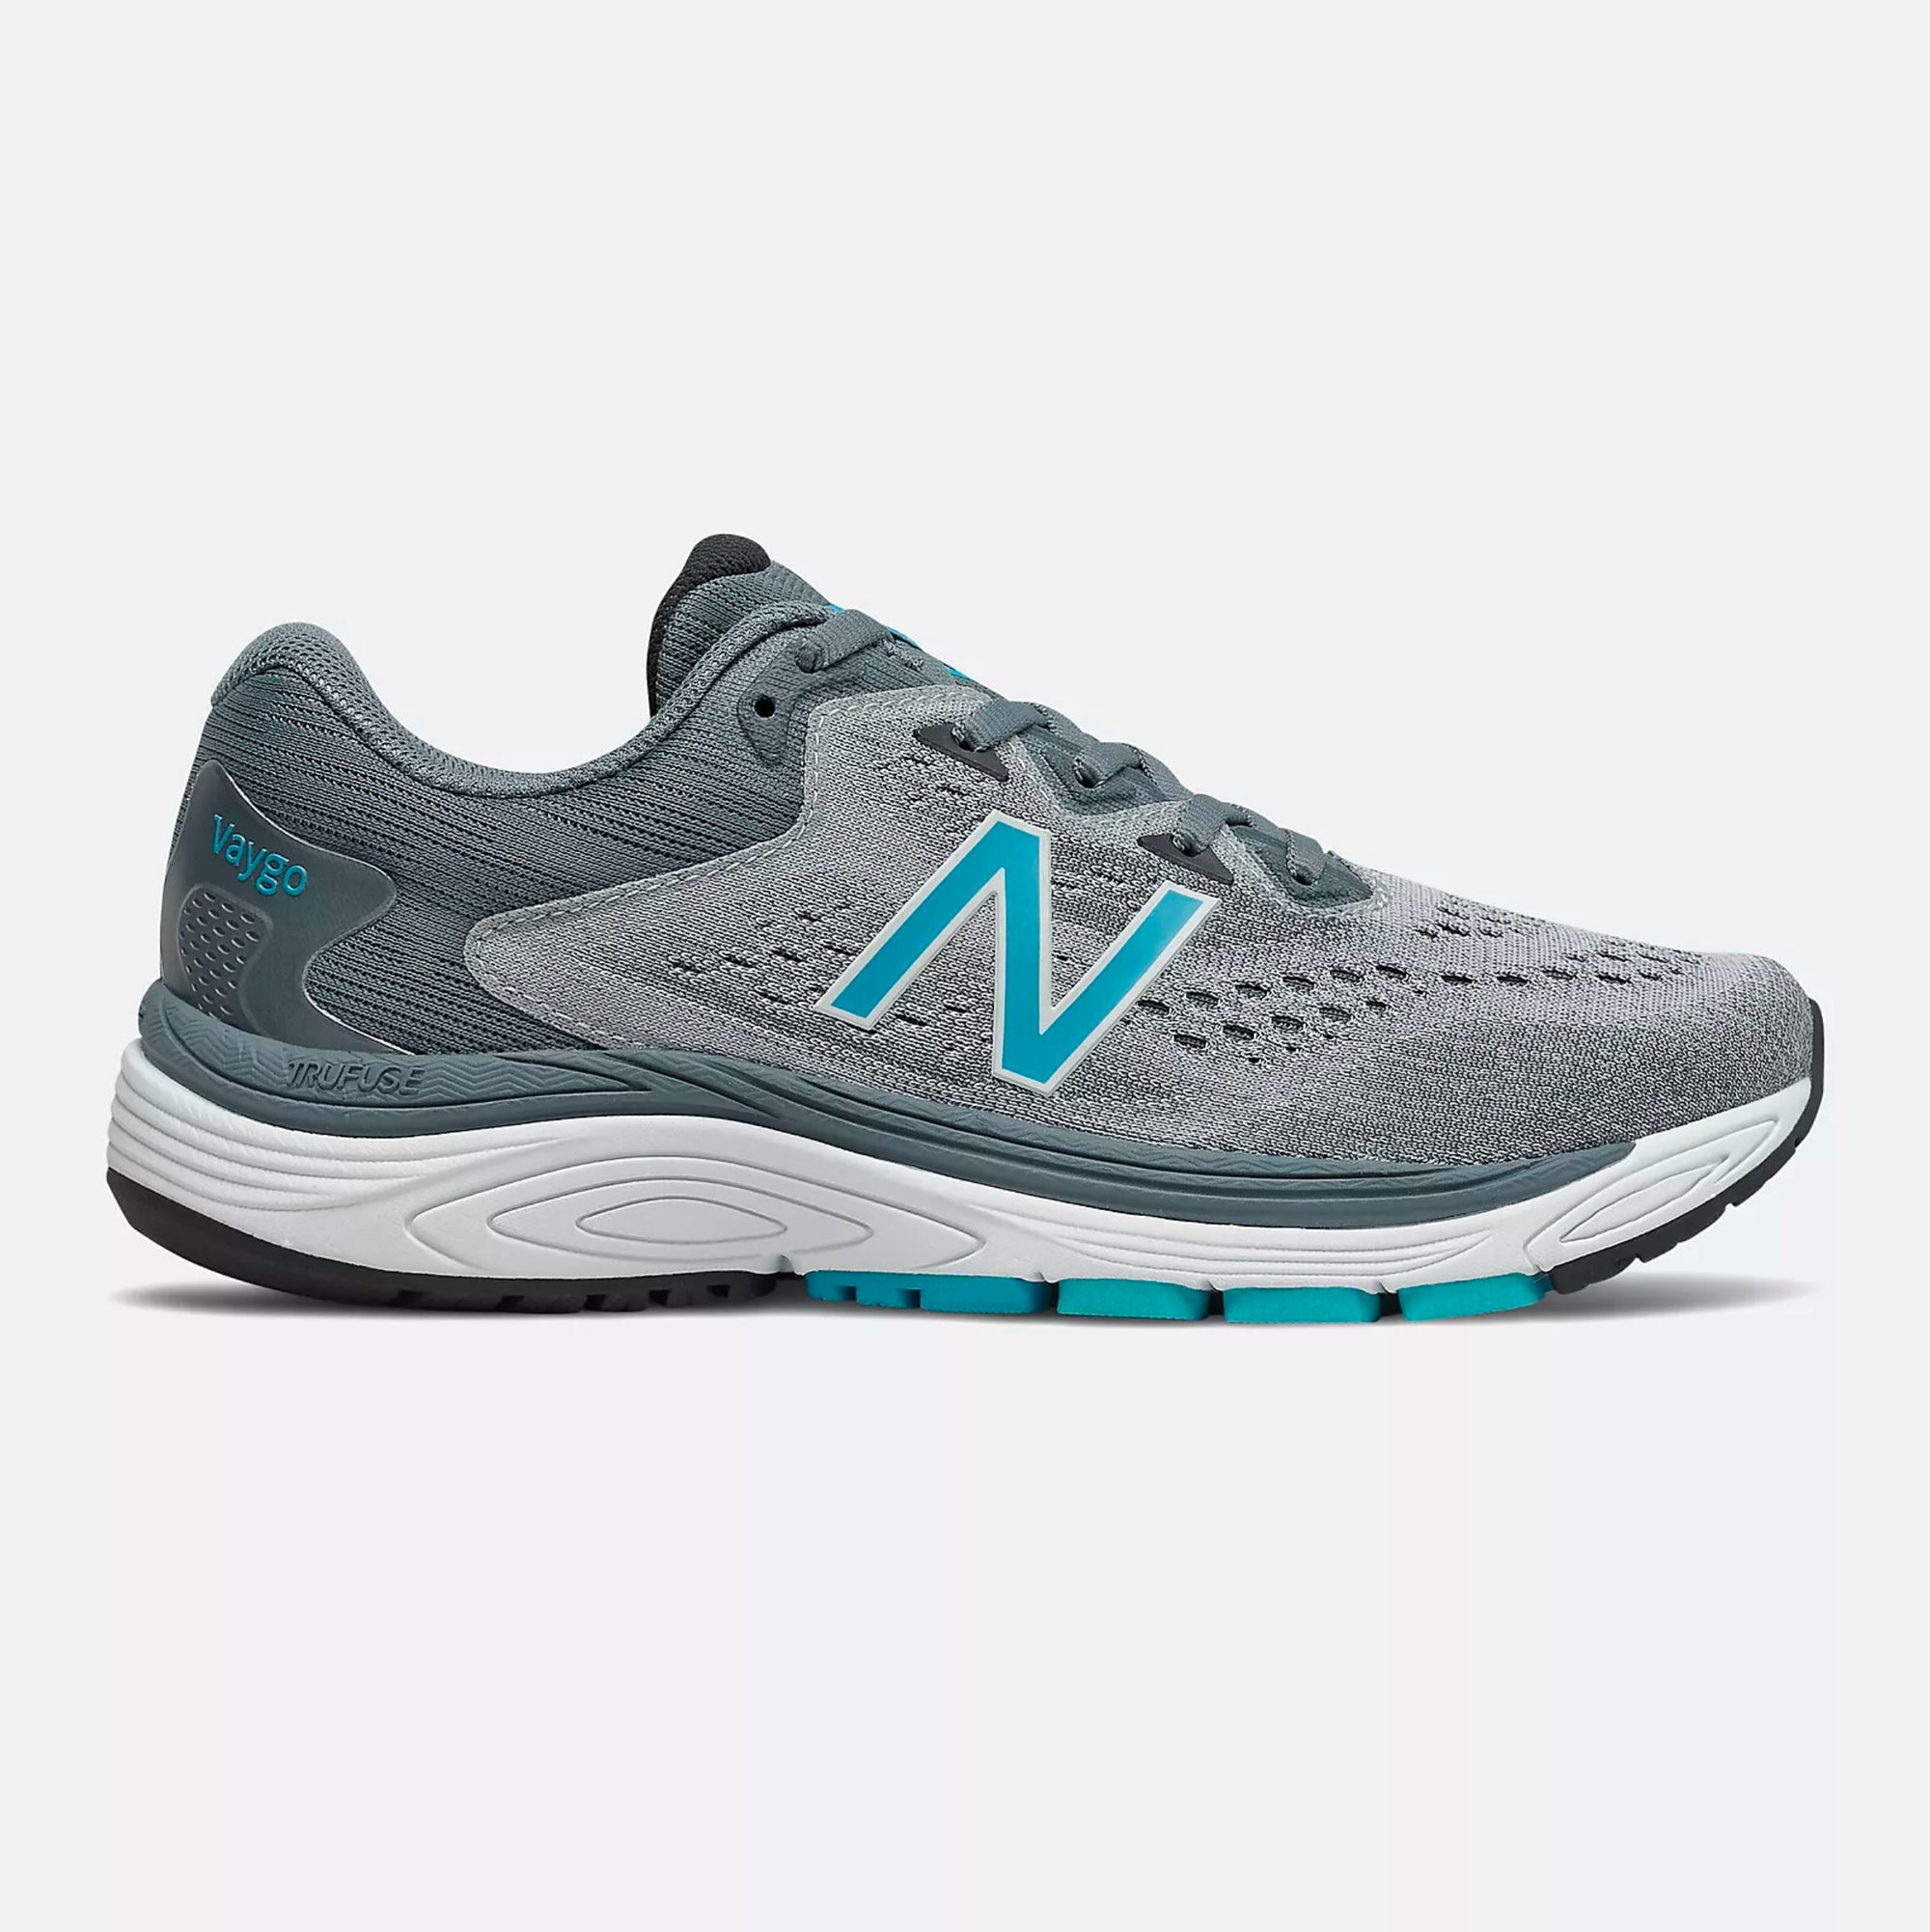 New Balance Women's Vaygo Running Shoe - Light Cyclone/Virtual Sky SP-Footwear-Womens New Balance